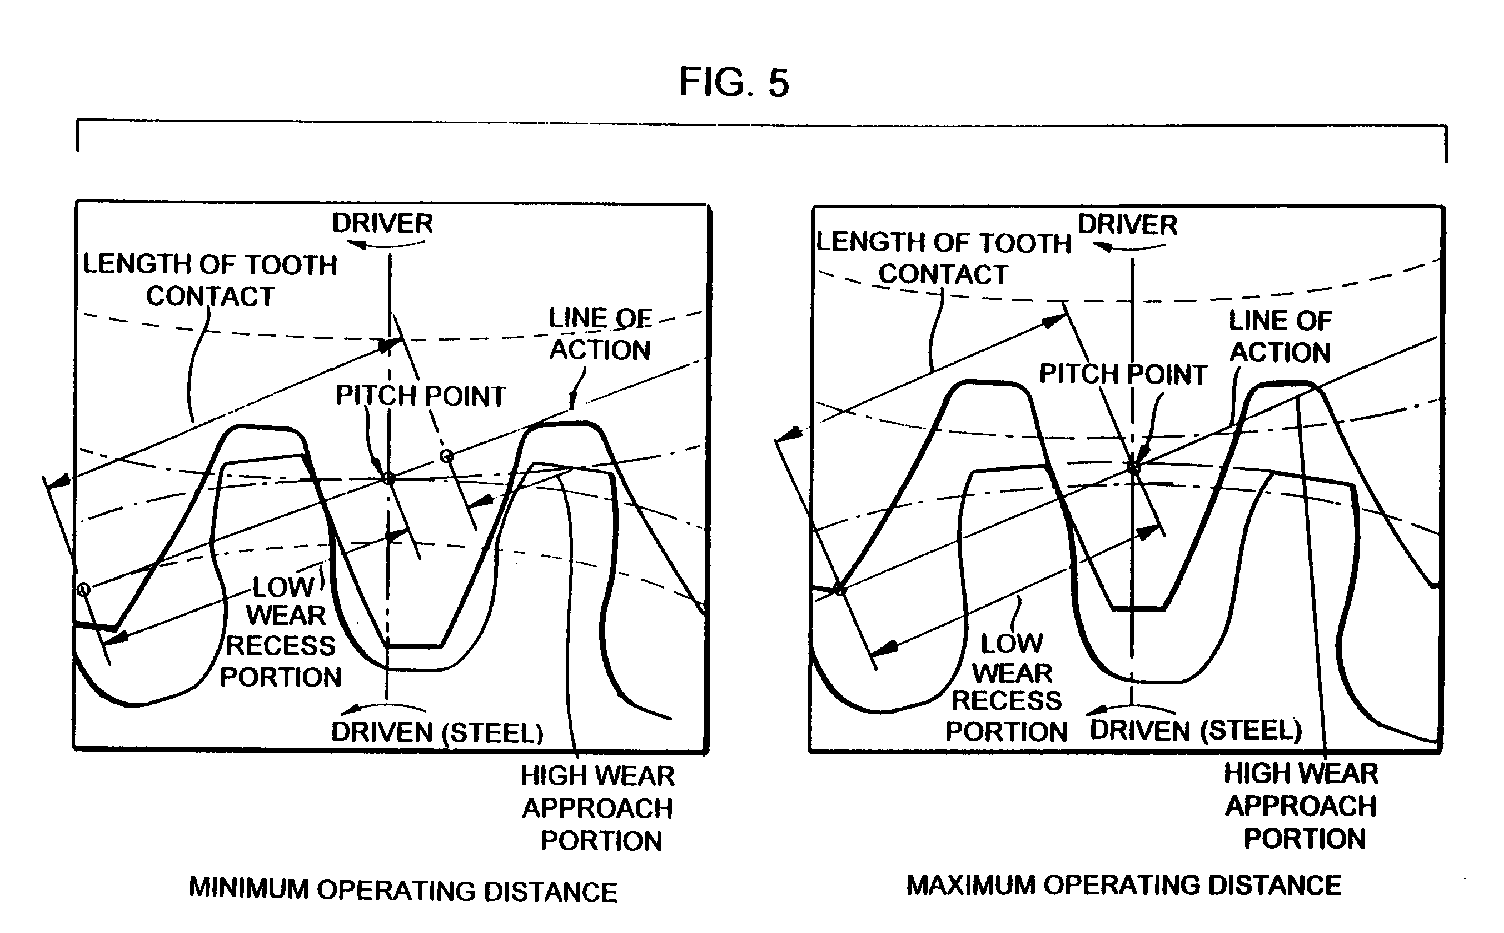 Non-metallic gear with keyless retaining device and improved tooth